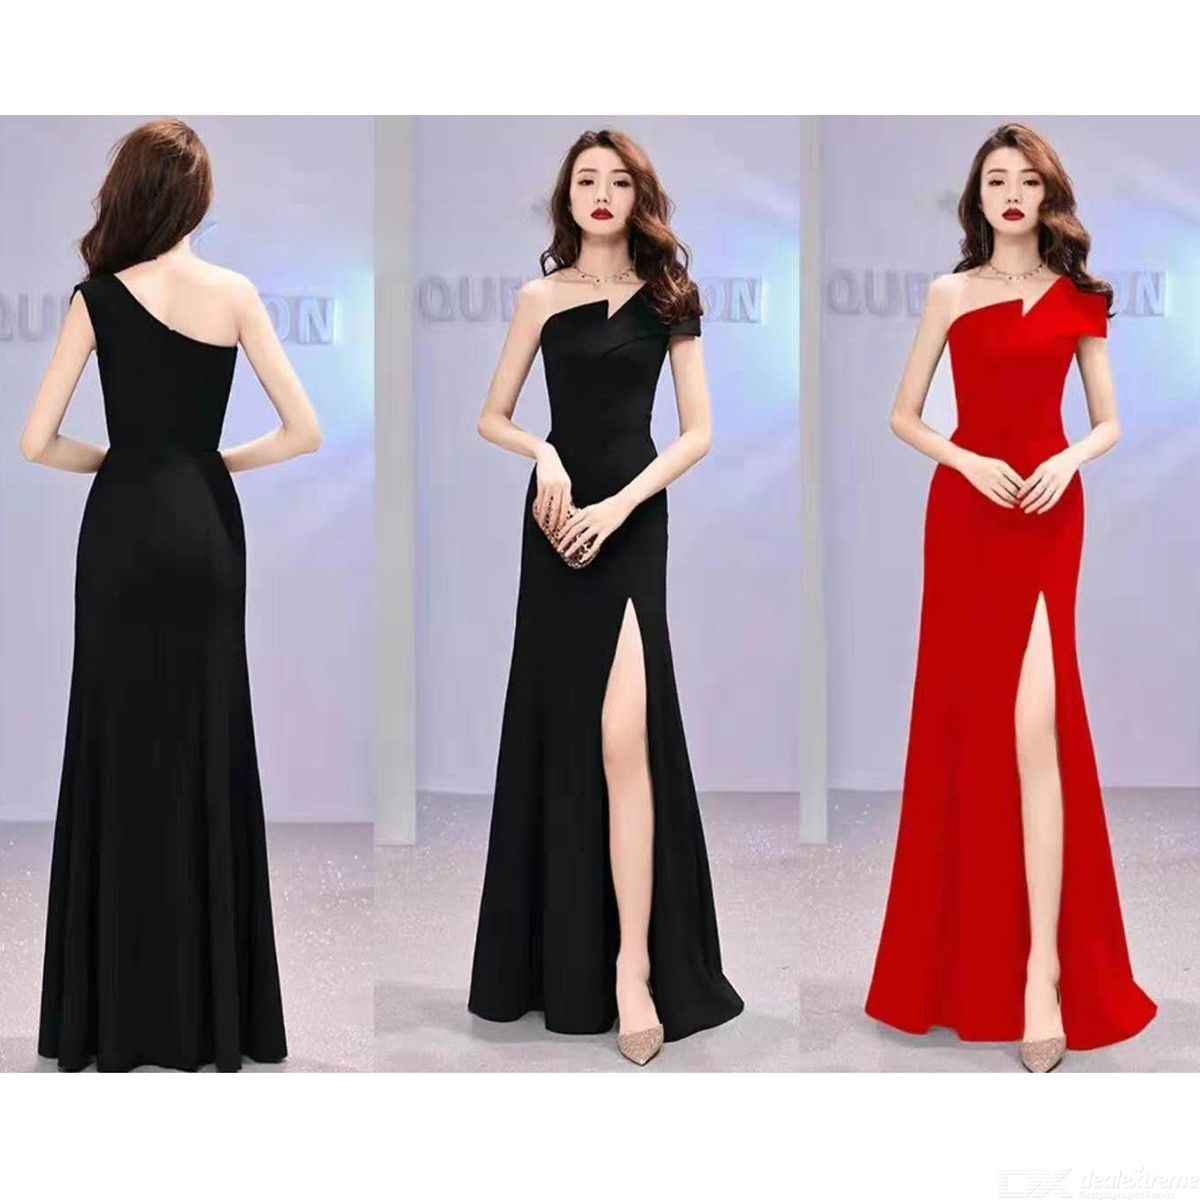 664bb7332562b Women's Evening Gowns One-shoulder Empire Waist Split Flared Maxi Dresses  For Wedding Cocktail Party Prom Banquet